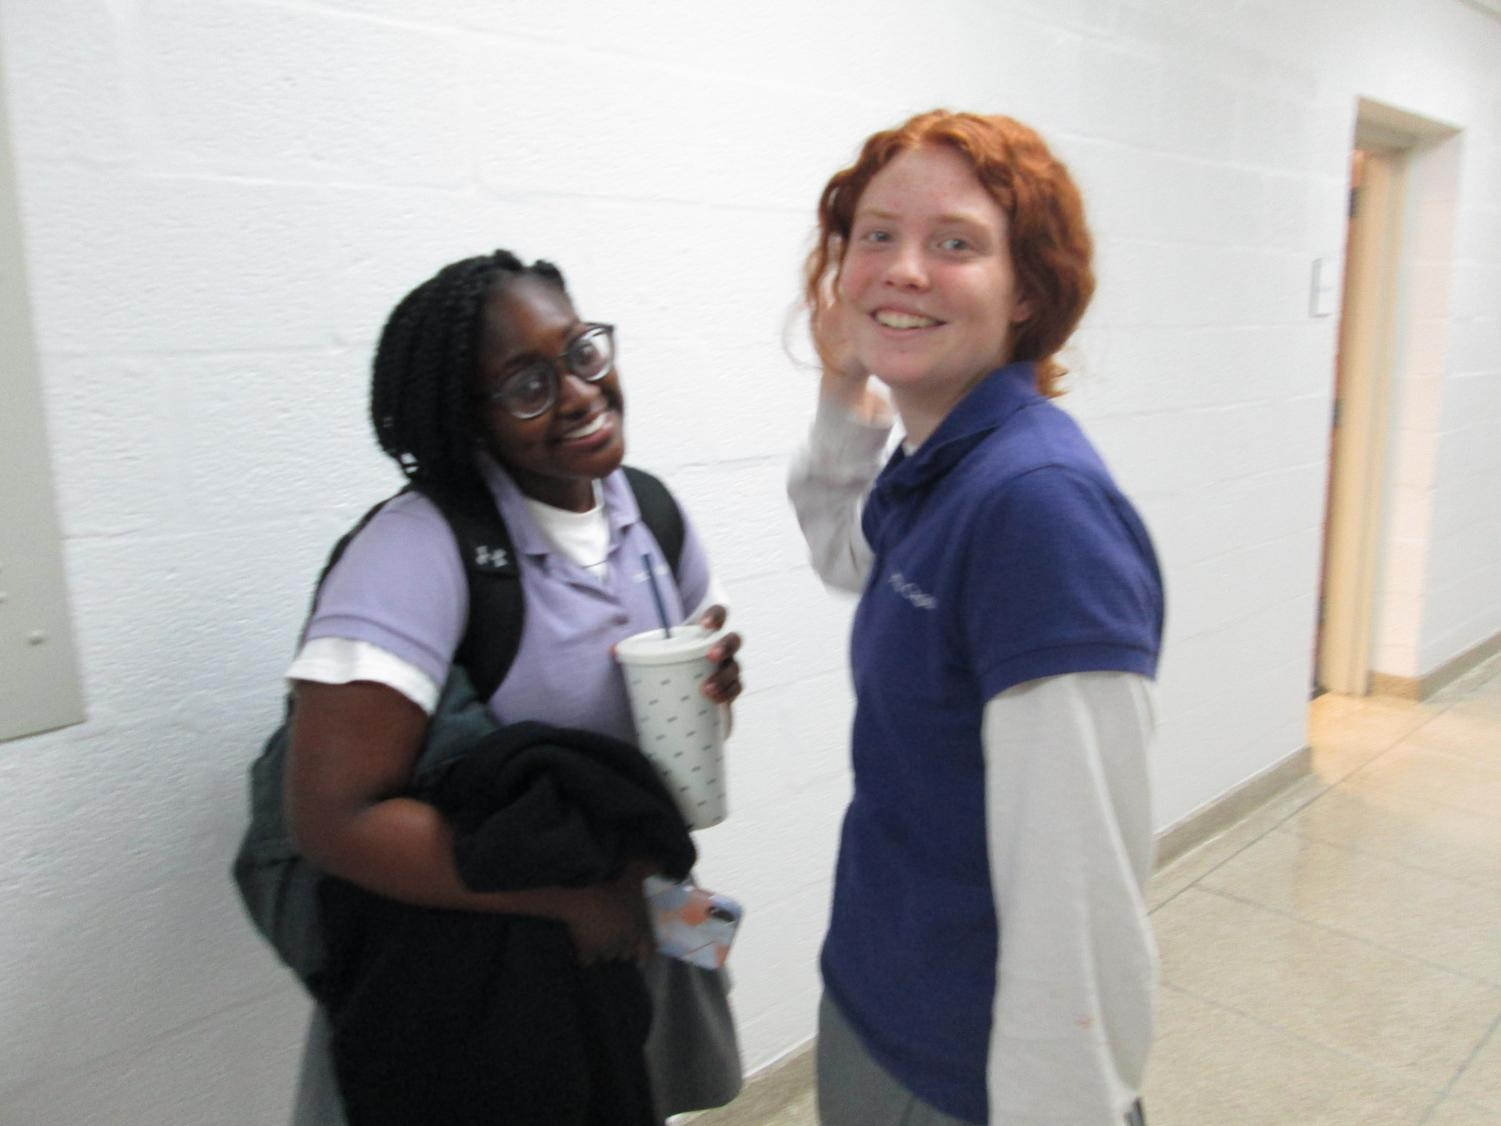 Sophomores Grace Martin and Ophelia Hyde having fun in the AHC halls